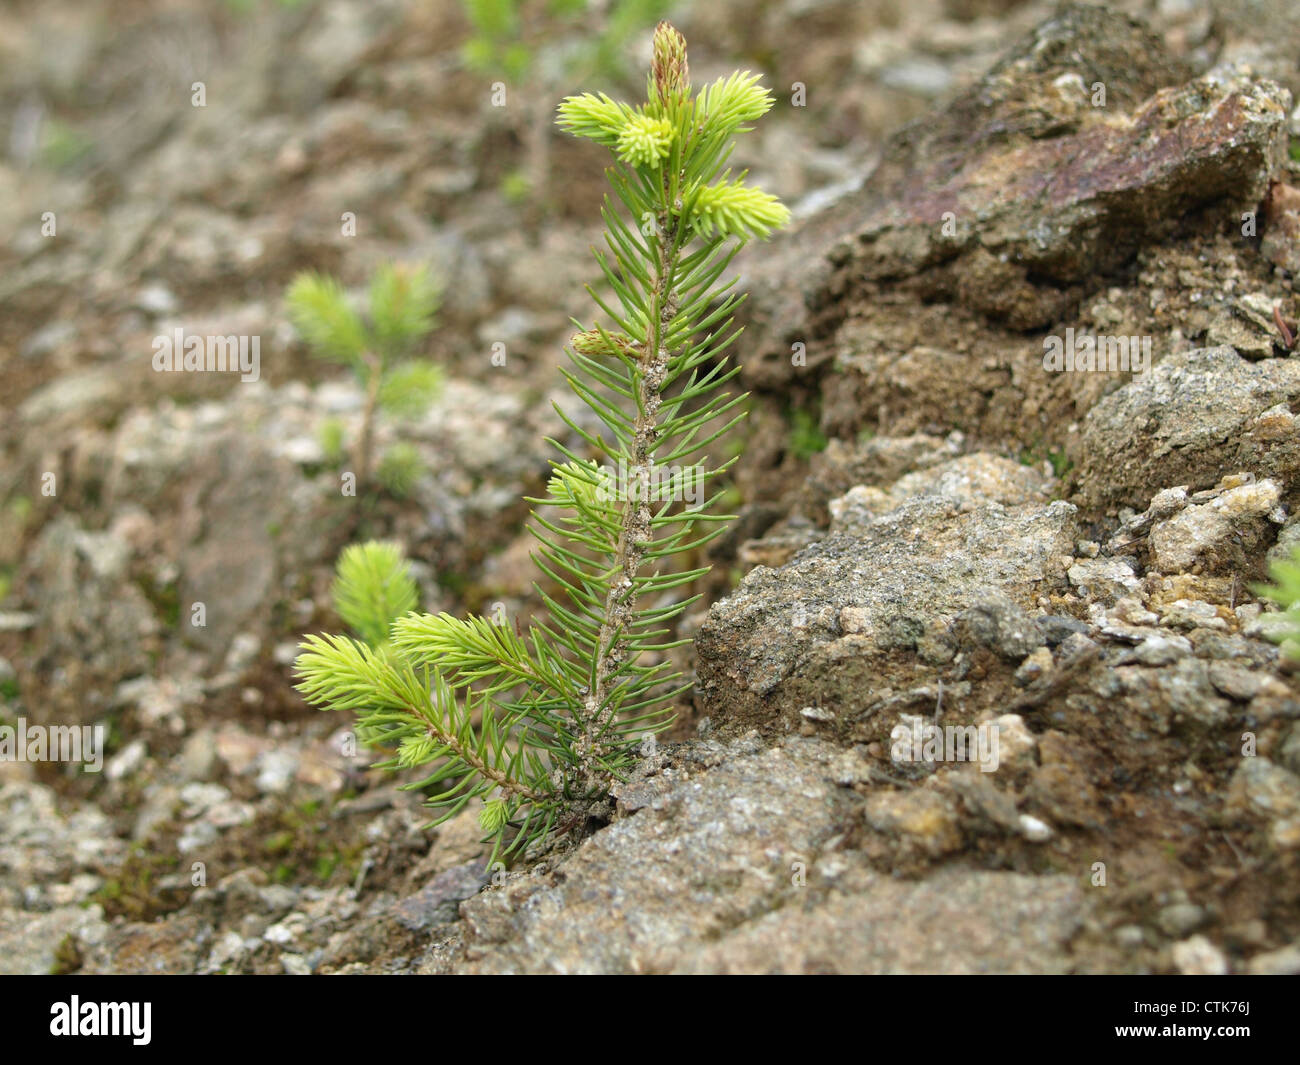 young spruce on stony ground / junge Fichte auf steinigem Boden Stock Photo